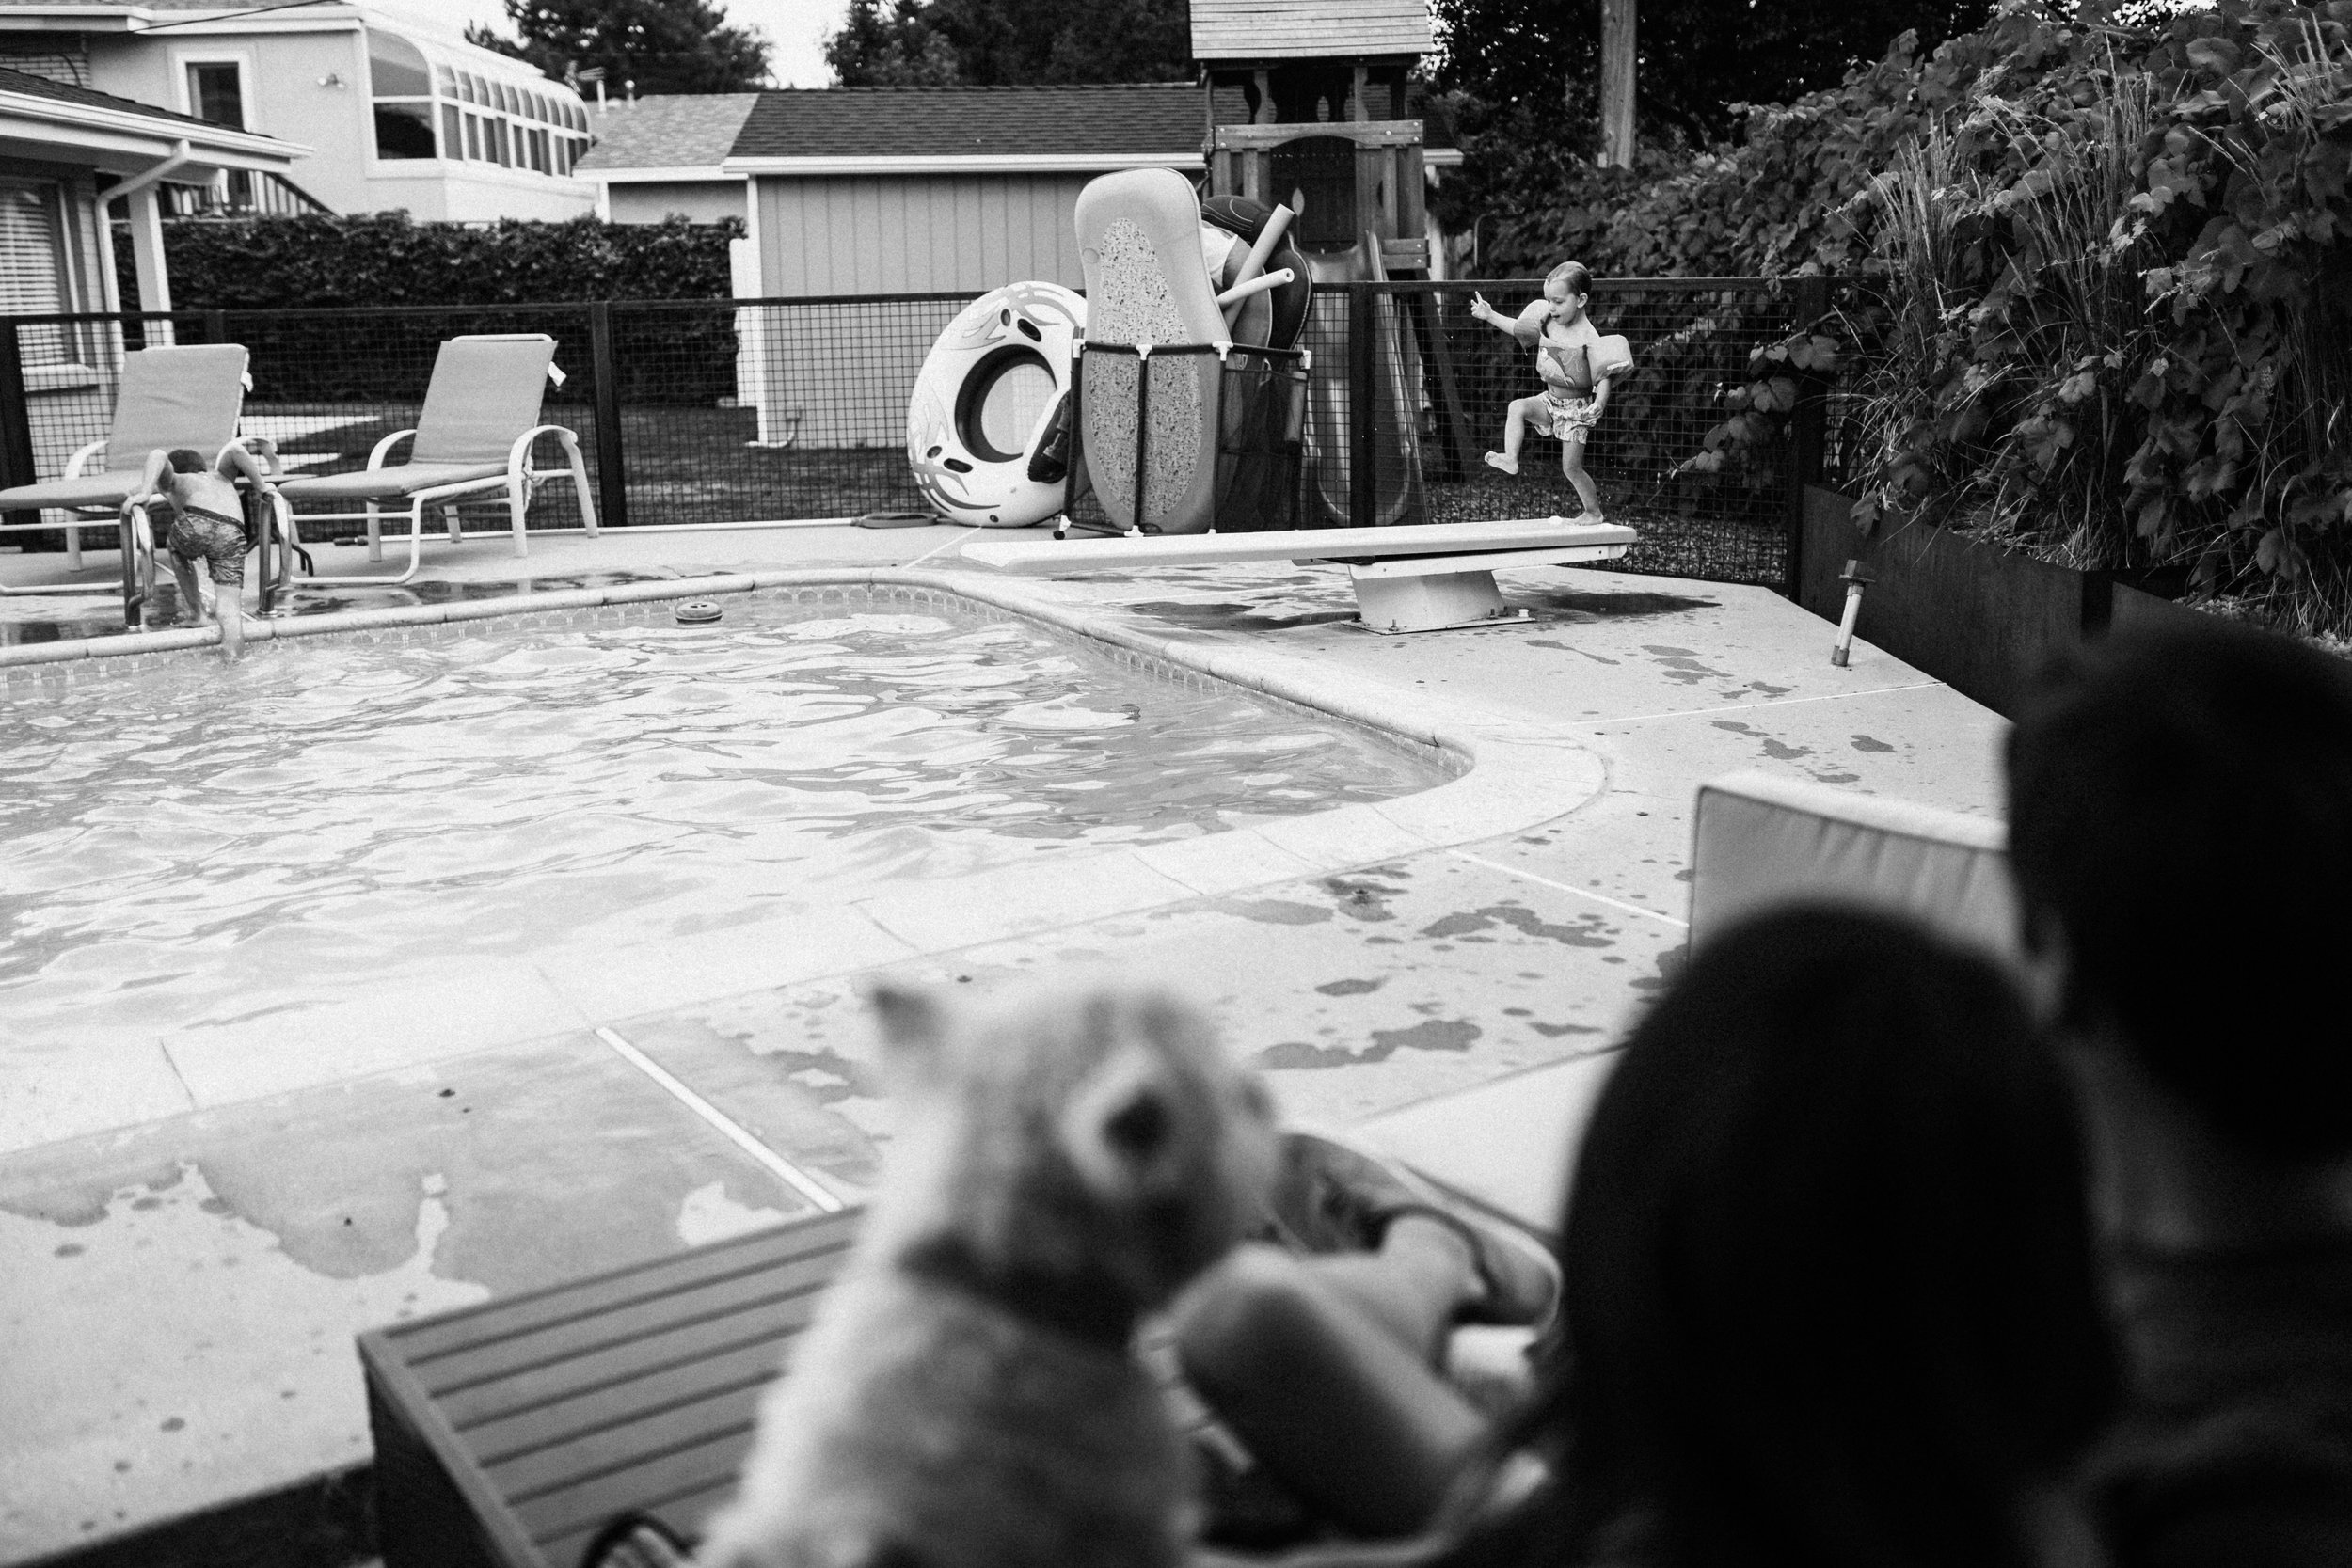 candid-artistic-black-and-white-family-fun-pool-time-during-in-home-session-with-jen-fairchild-photography-slc-utah